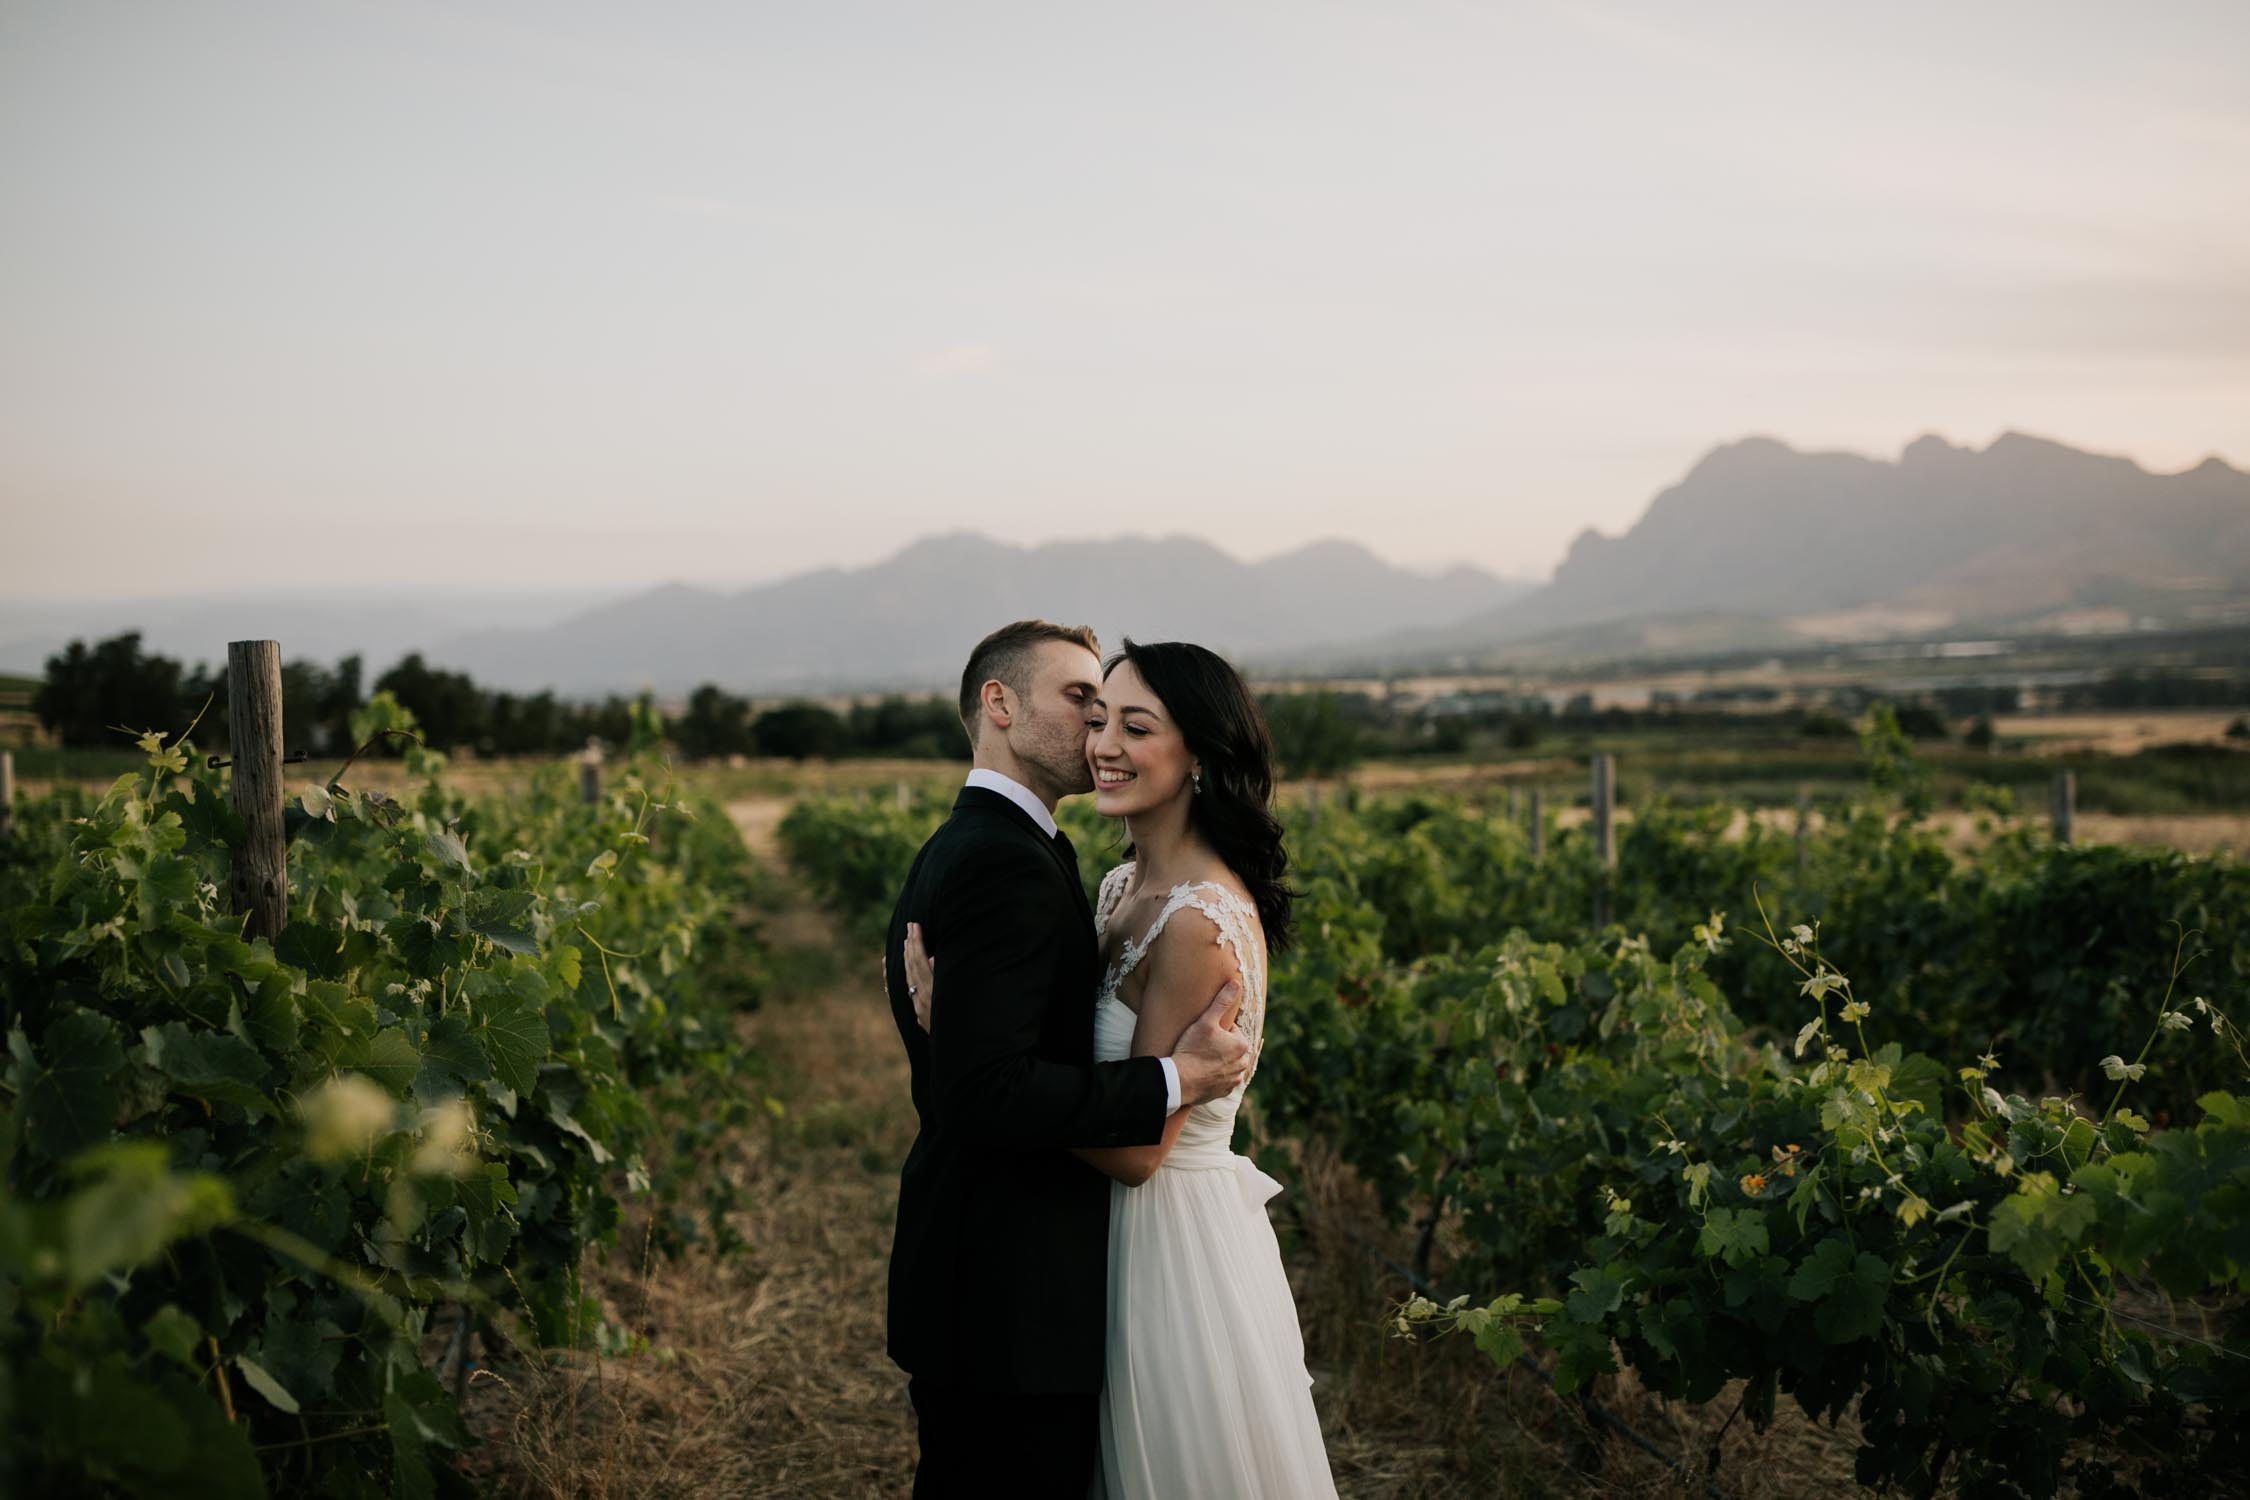 Belair Wedding Venue and Pavilion Cape Town